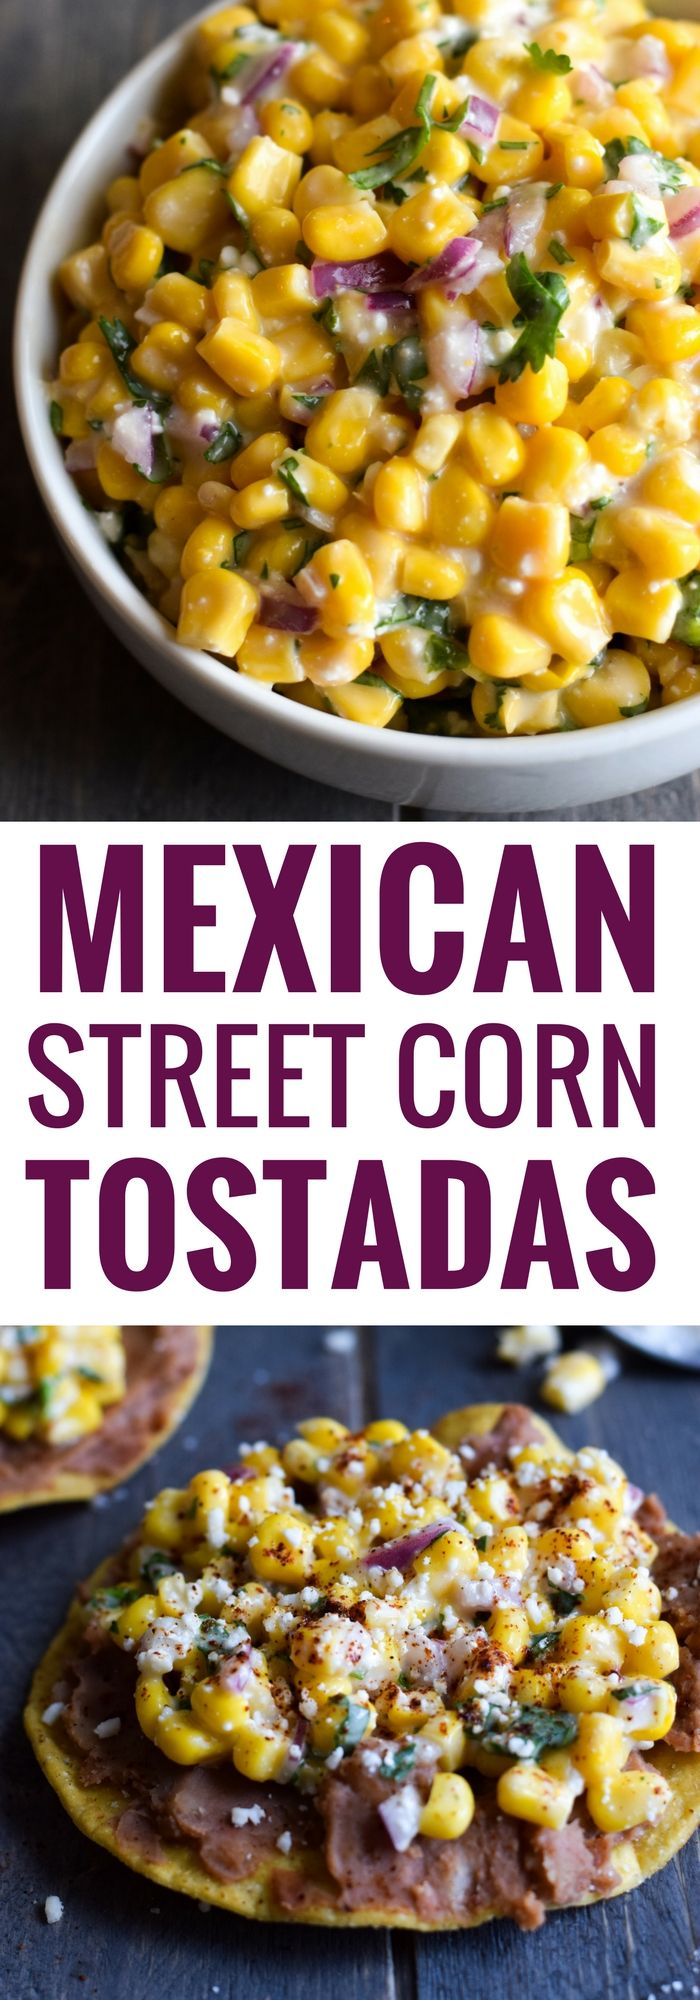 Ready in only 15 minutes, these Mexican Street Corn Tostadas made with canned corn, cotija cheese and chopped cilantro make for an easy lunch or quick dinner that's also gluten free and vegetarian. via @isabeleats